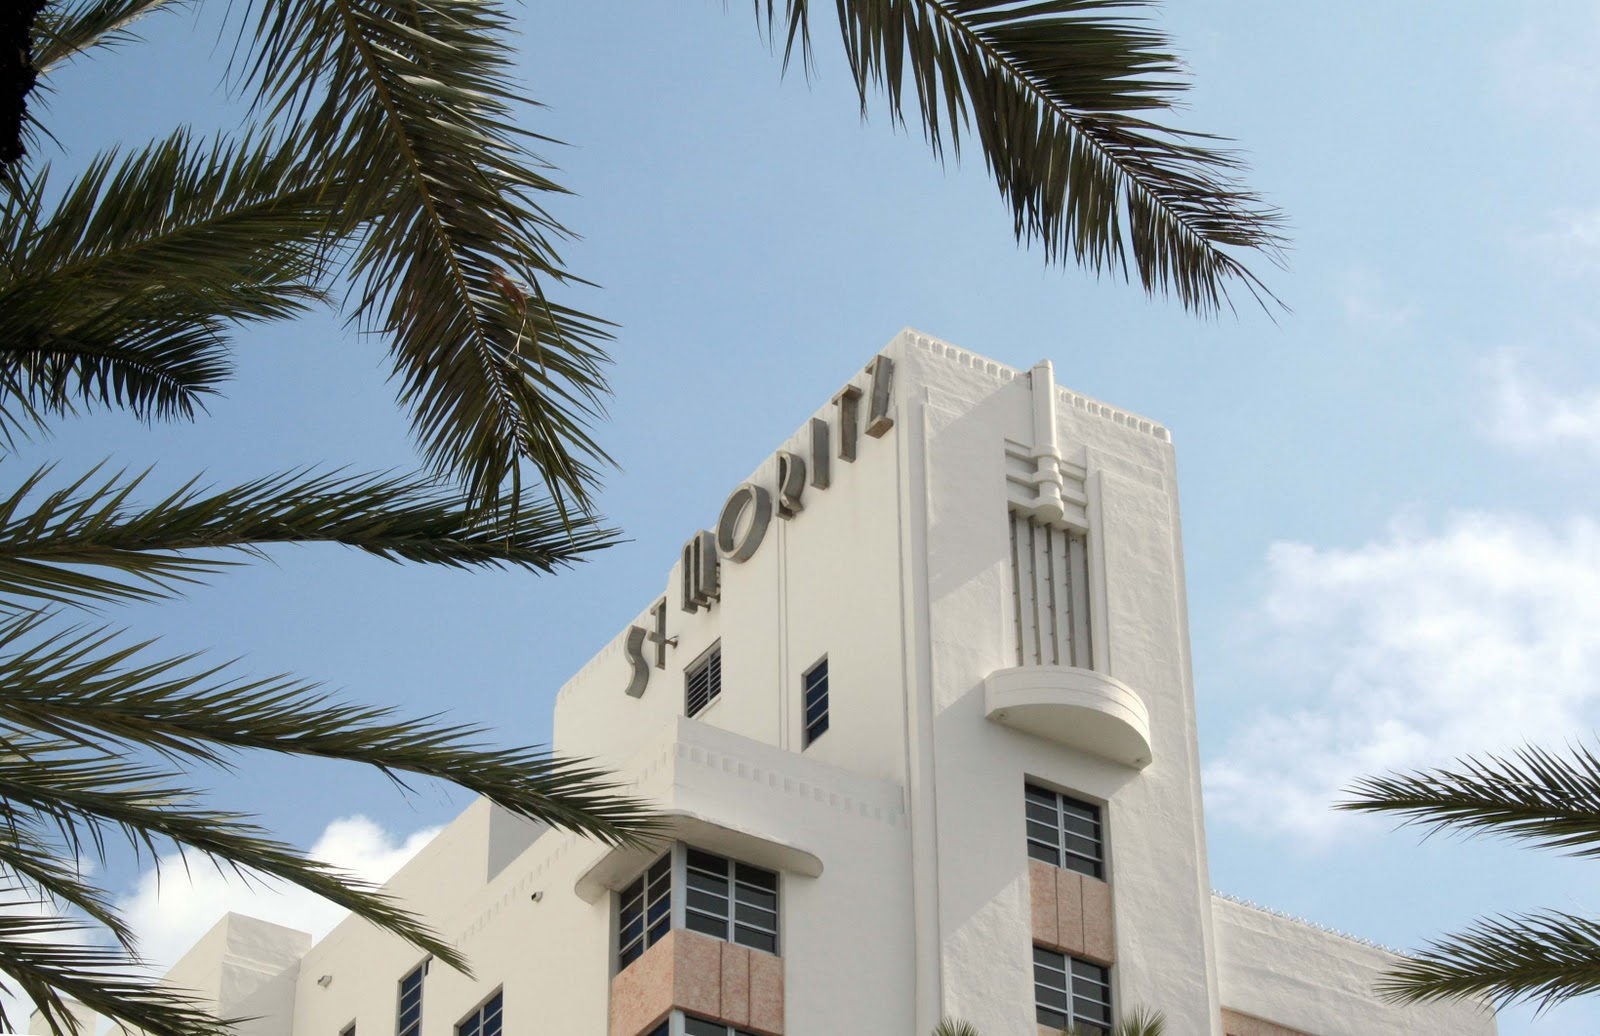 On Collins Avenue Loews Miami Beach Hotel Opened In 1998 Combines A New 17 Story Tower With The 60 Year Old St Moritz Fully Red To